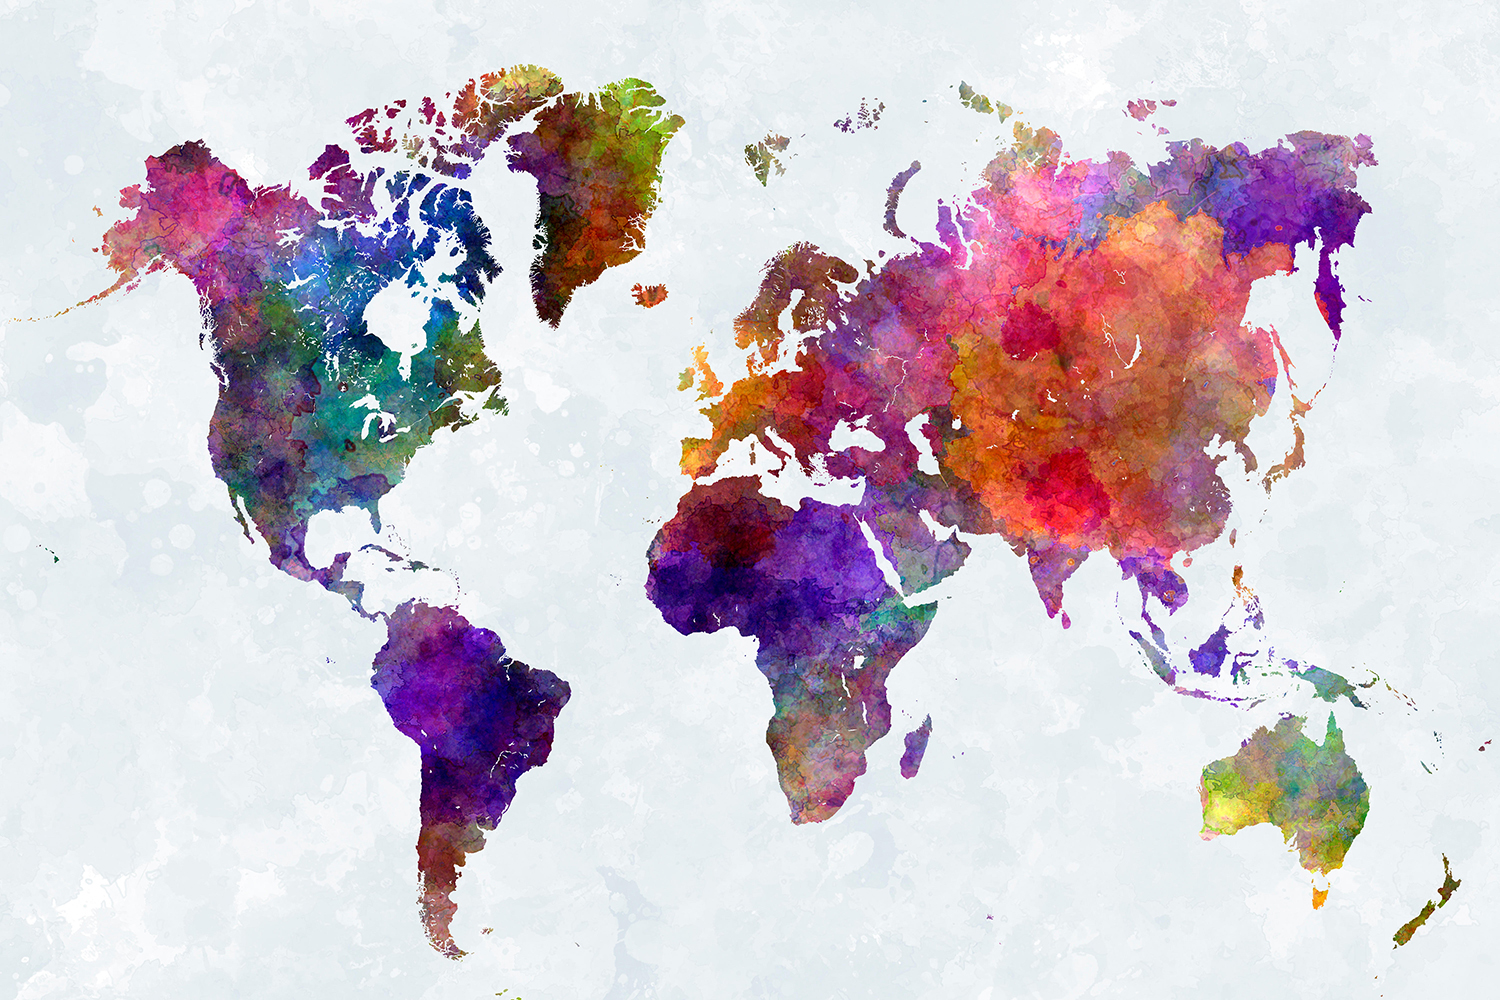 EWNJN6 World map in watercolor painting abstract splatters